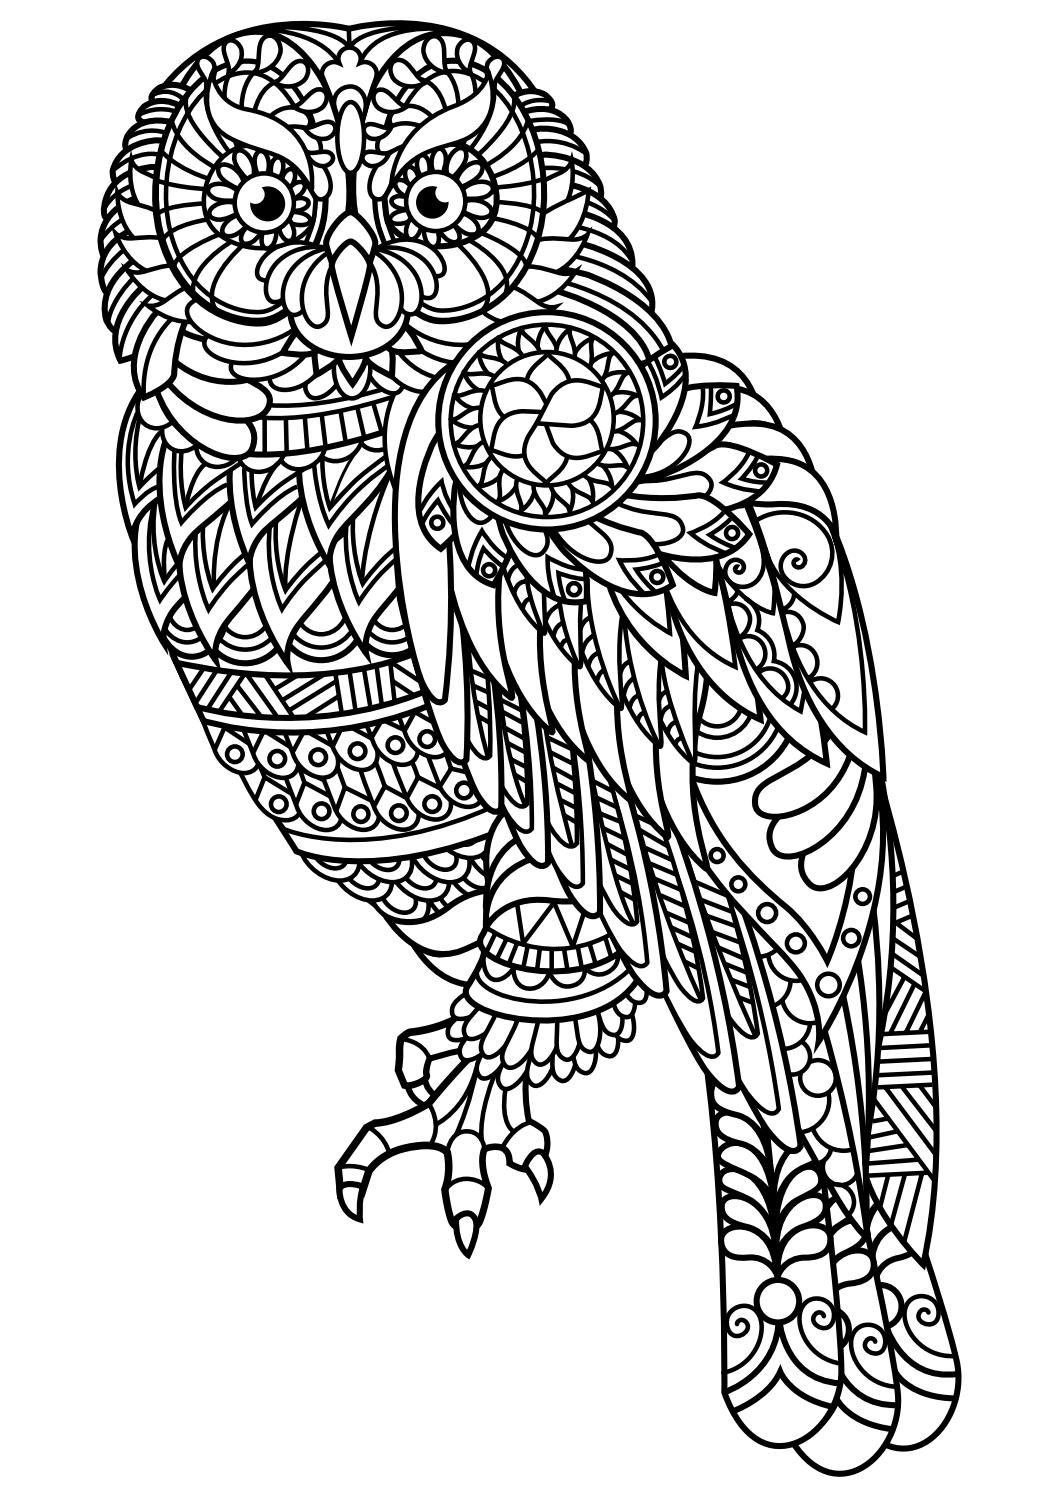 Animal coloring pages pdf (With images) | Bird coloring ... | free printable coloring pages for adults animals